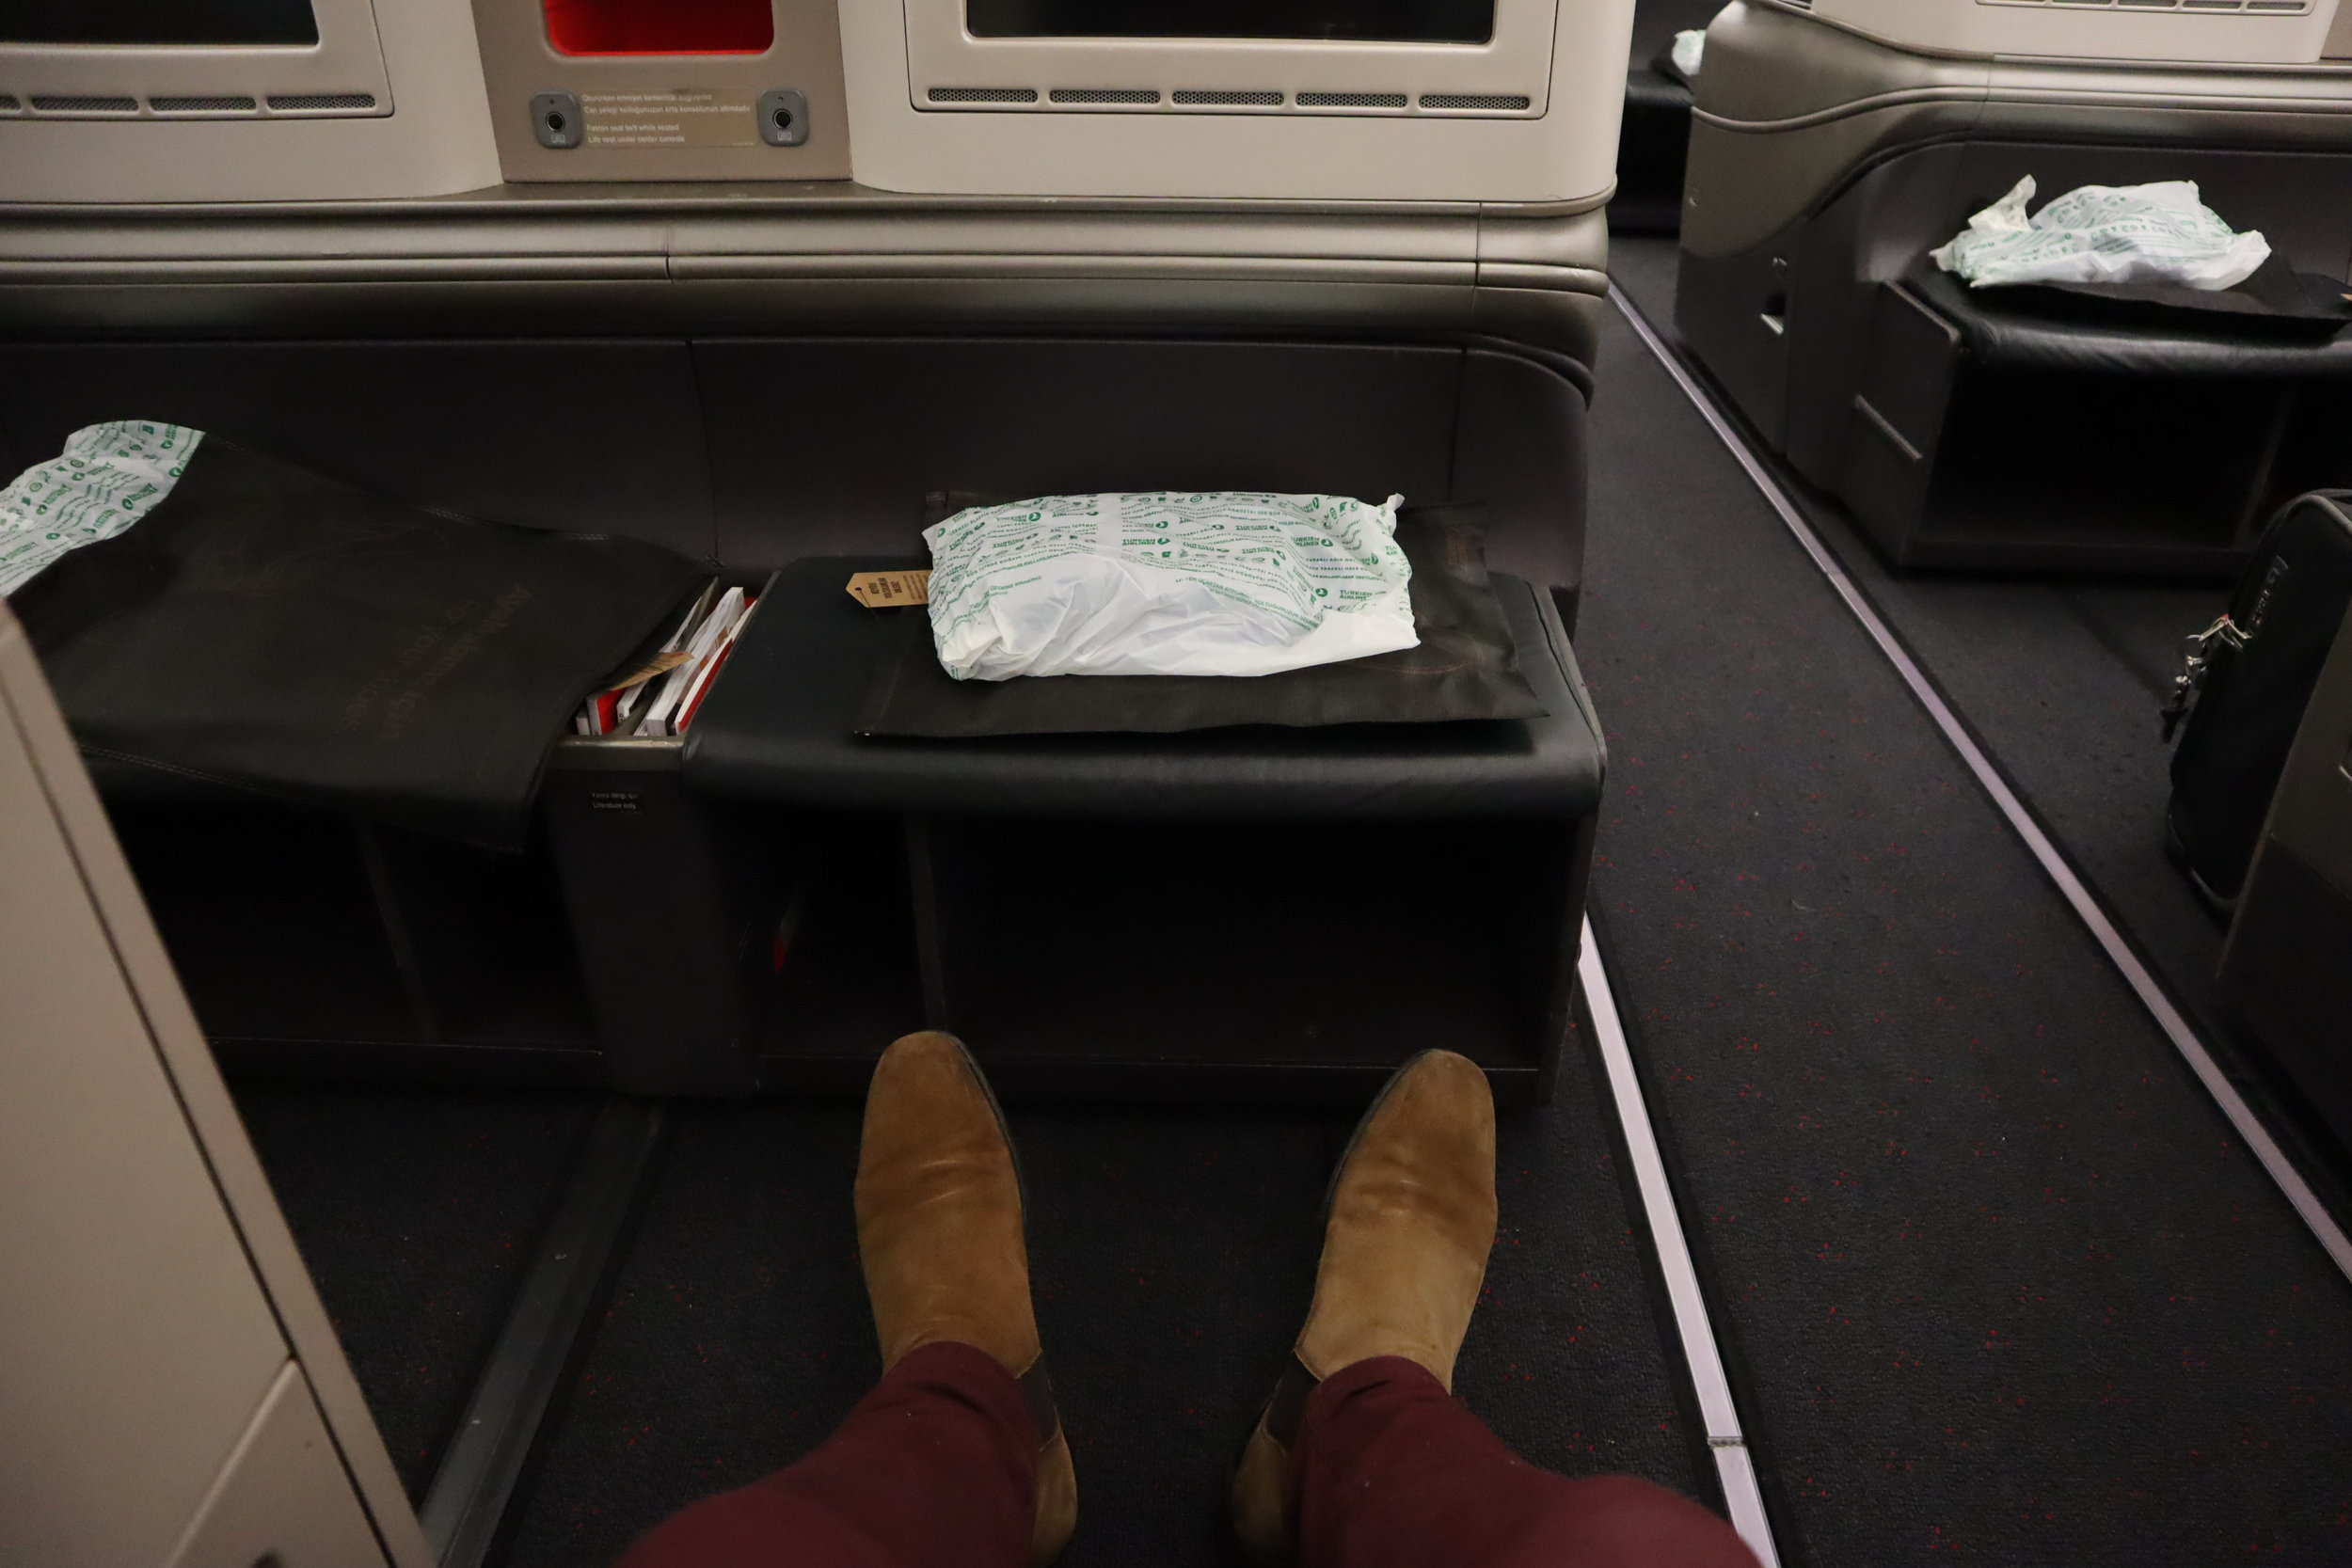 Turkish Airlines A330 business class – Legroom